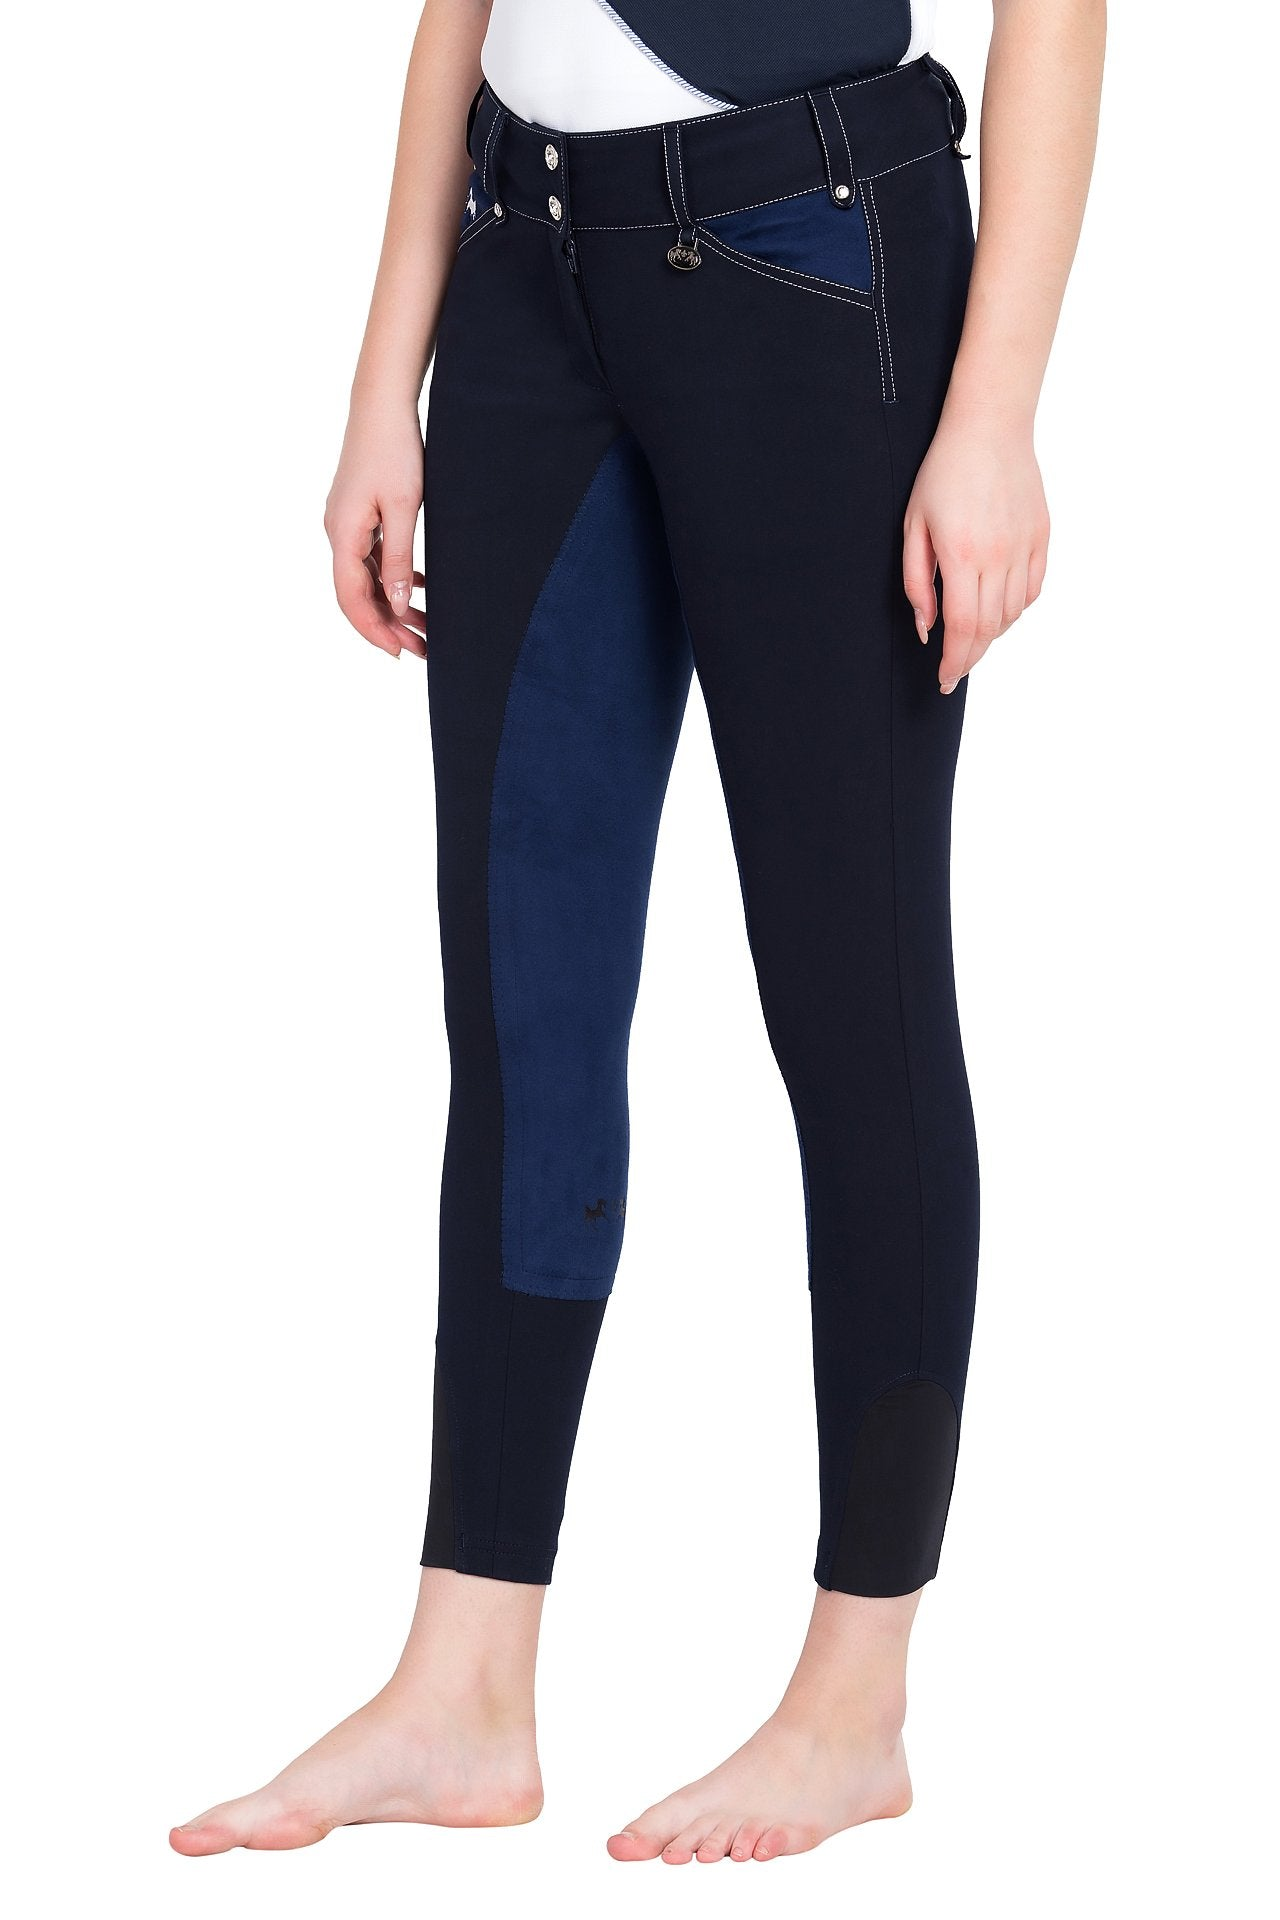 Equine Couture Ladies Blakely Full Seat Breeches_1